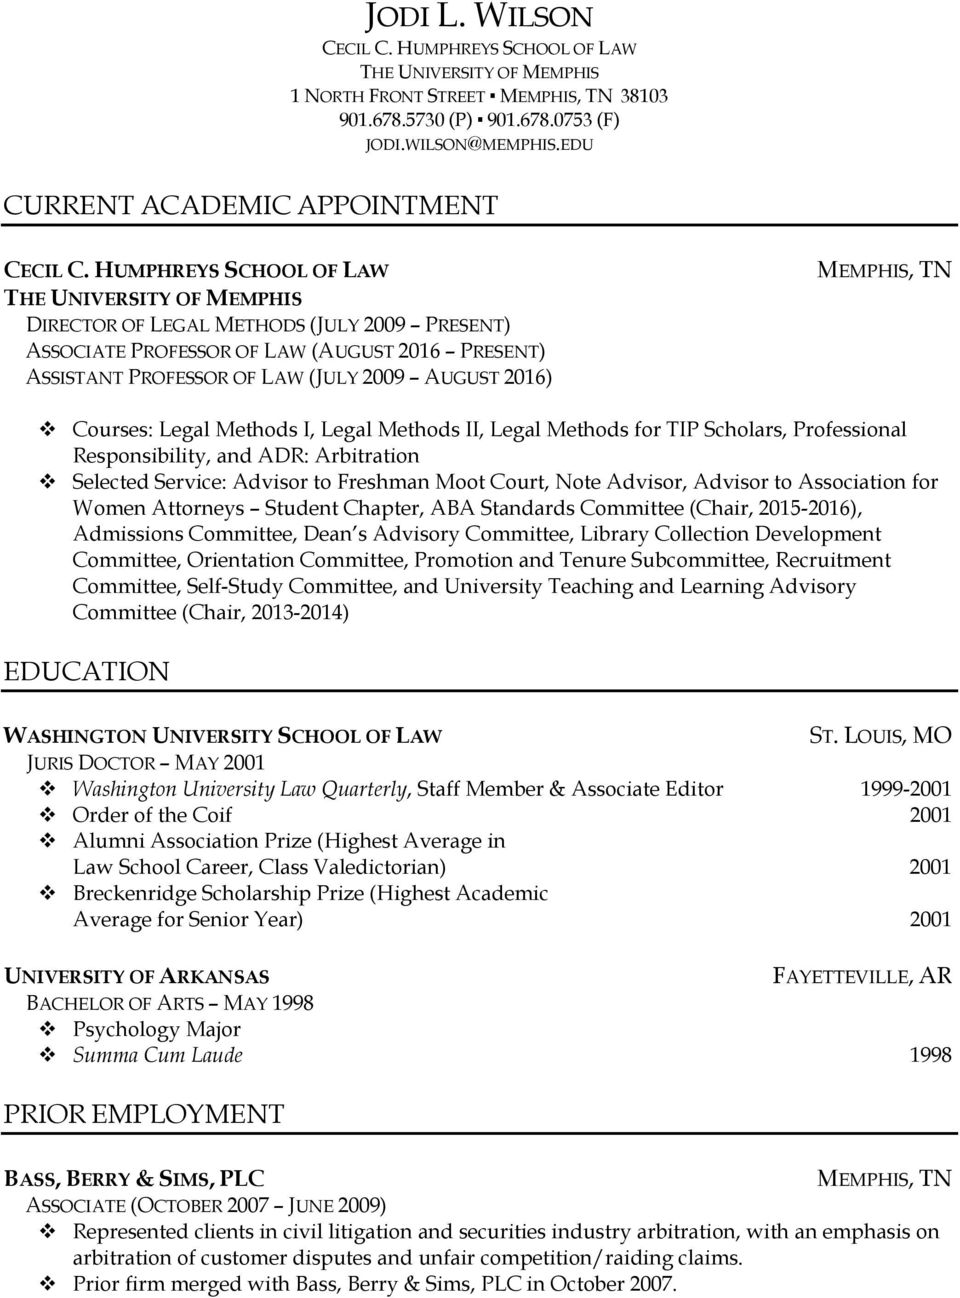 Legal Methods II, Legal Methods for TIP Scholars, Professional Responsibility, and ADR: Arbitration Selected Service: Advisor to Freshman Moot Court, Note Advisor, Advisor to Association for Women